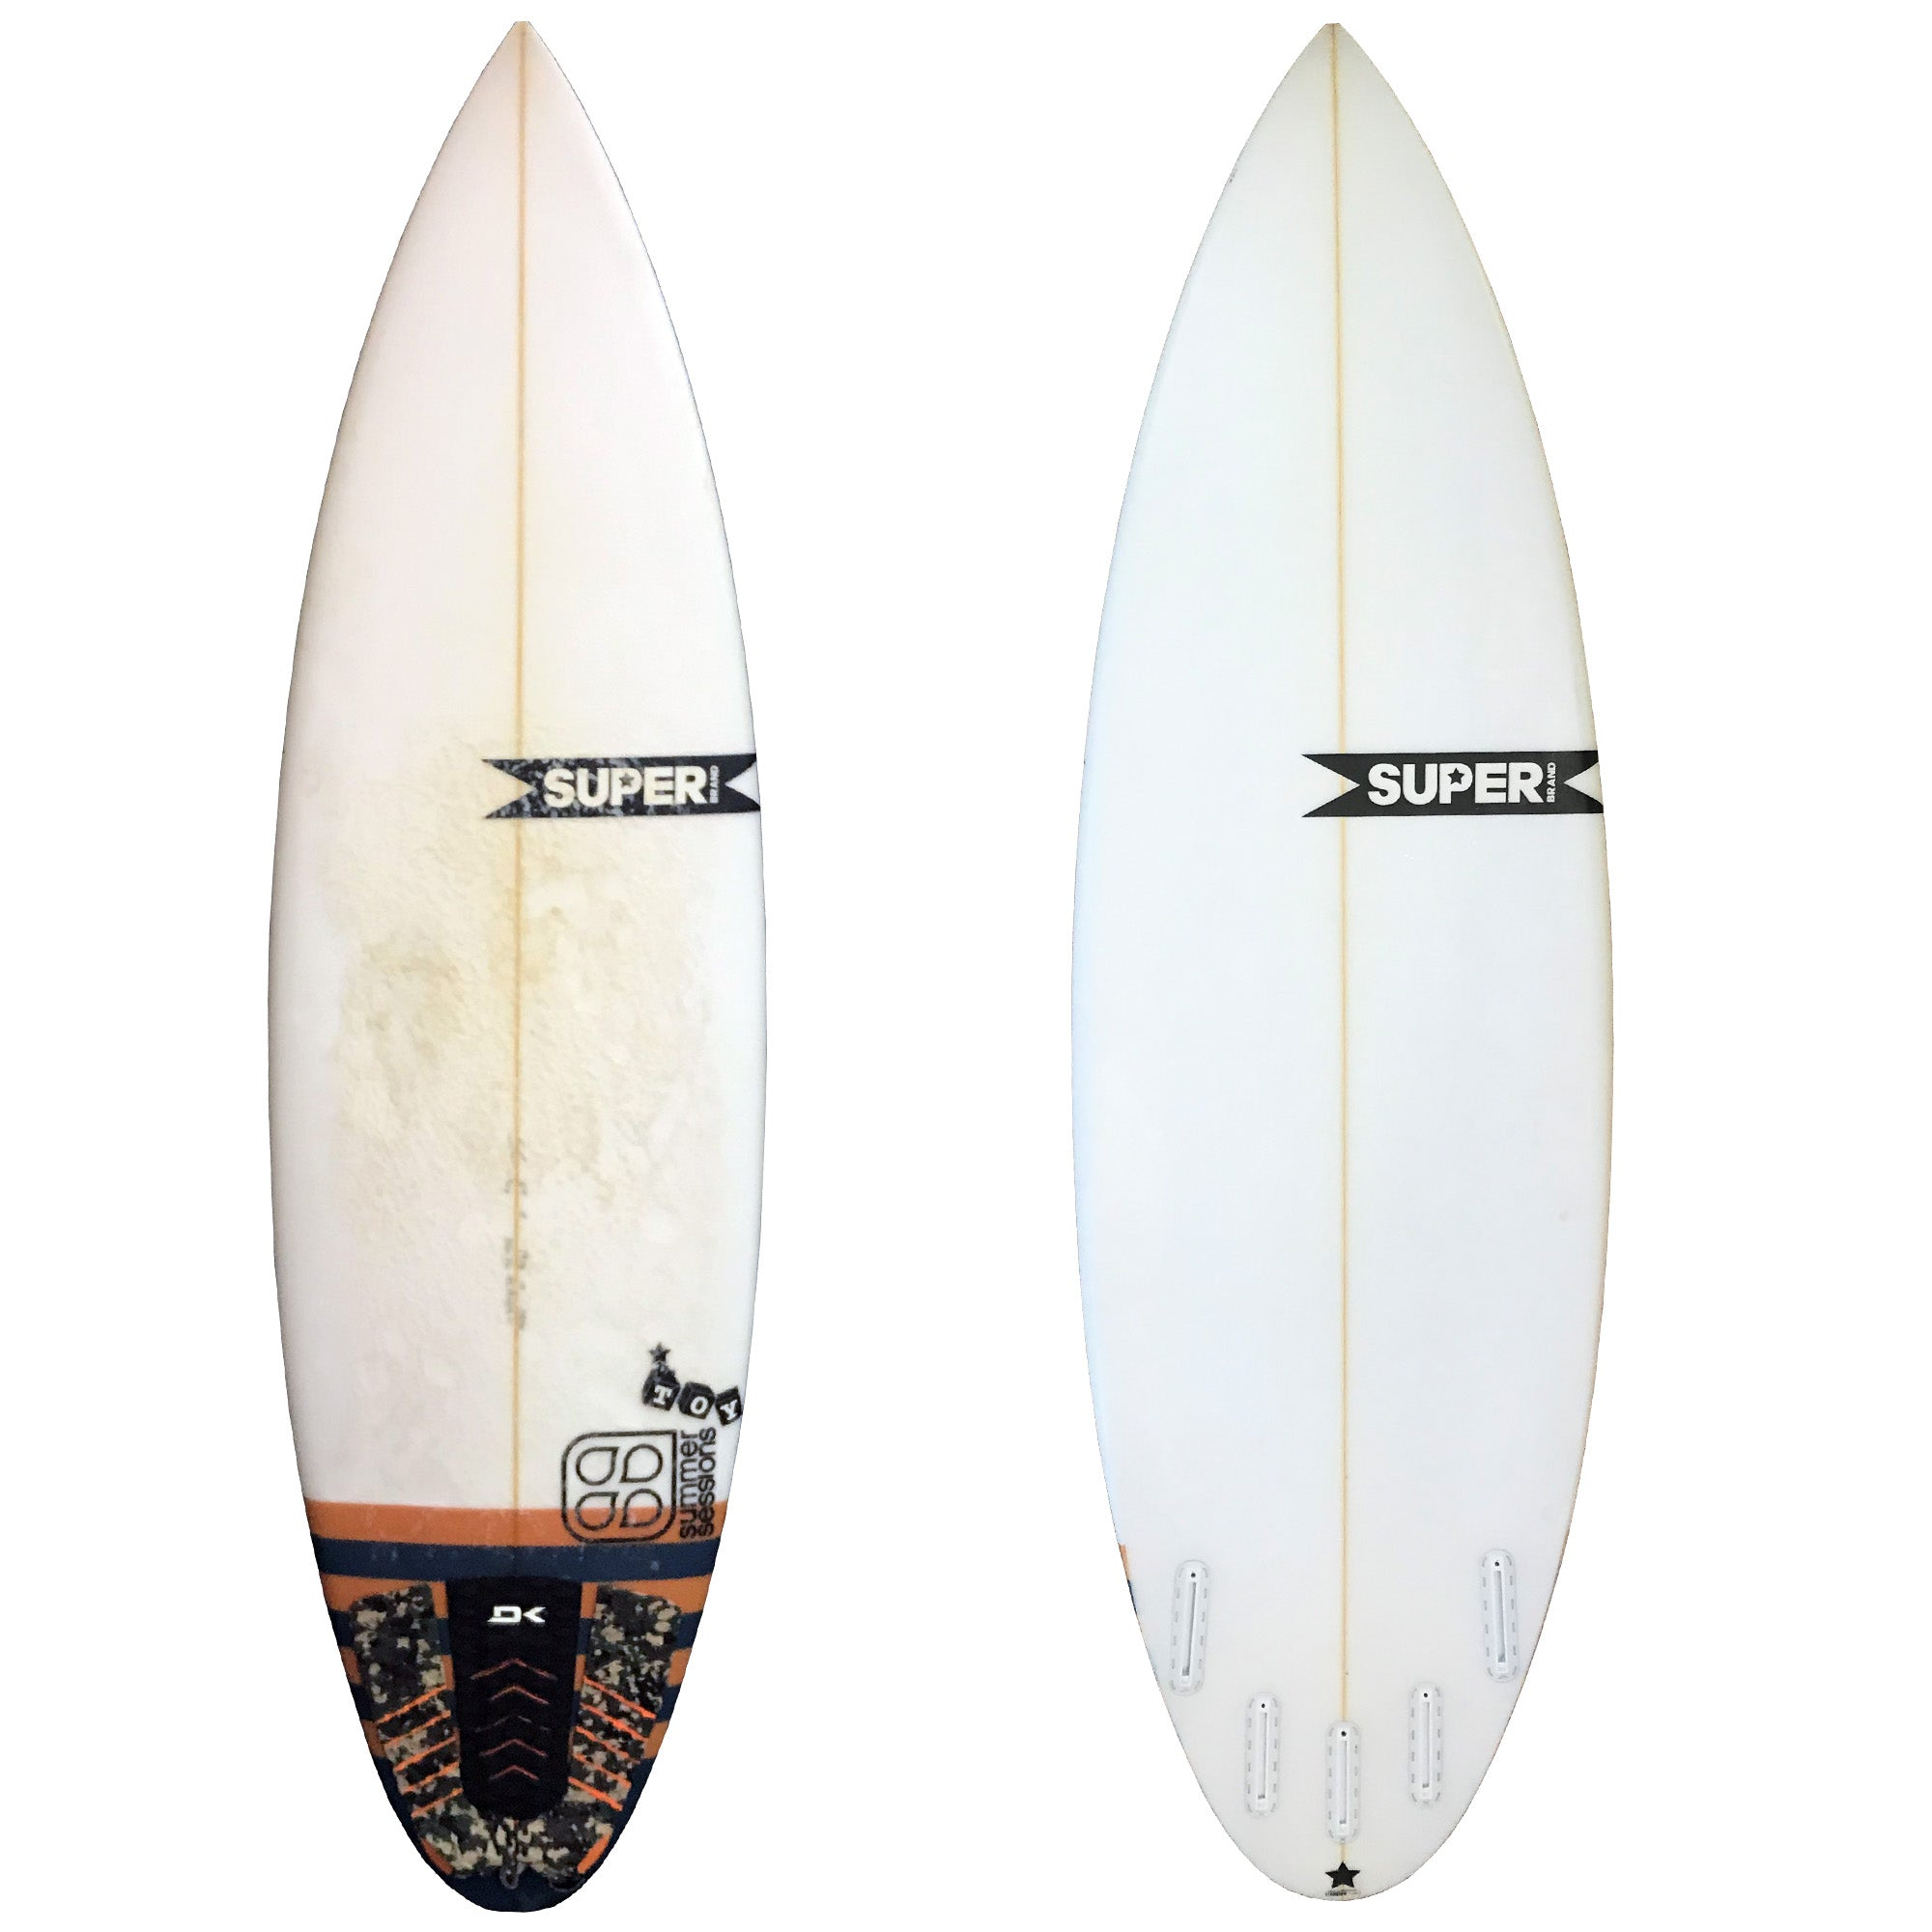 Super Brand Toy 5'10 Used Surfboard